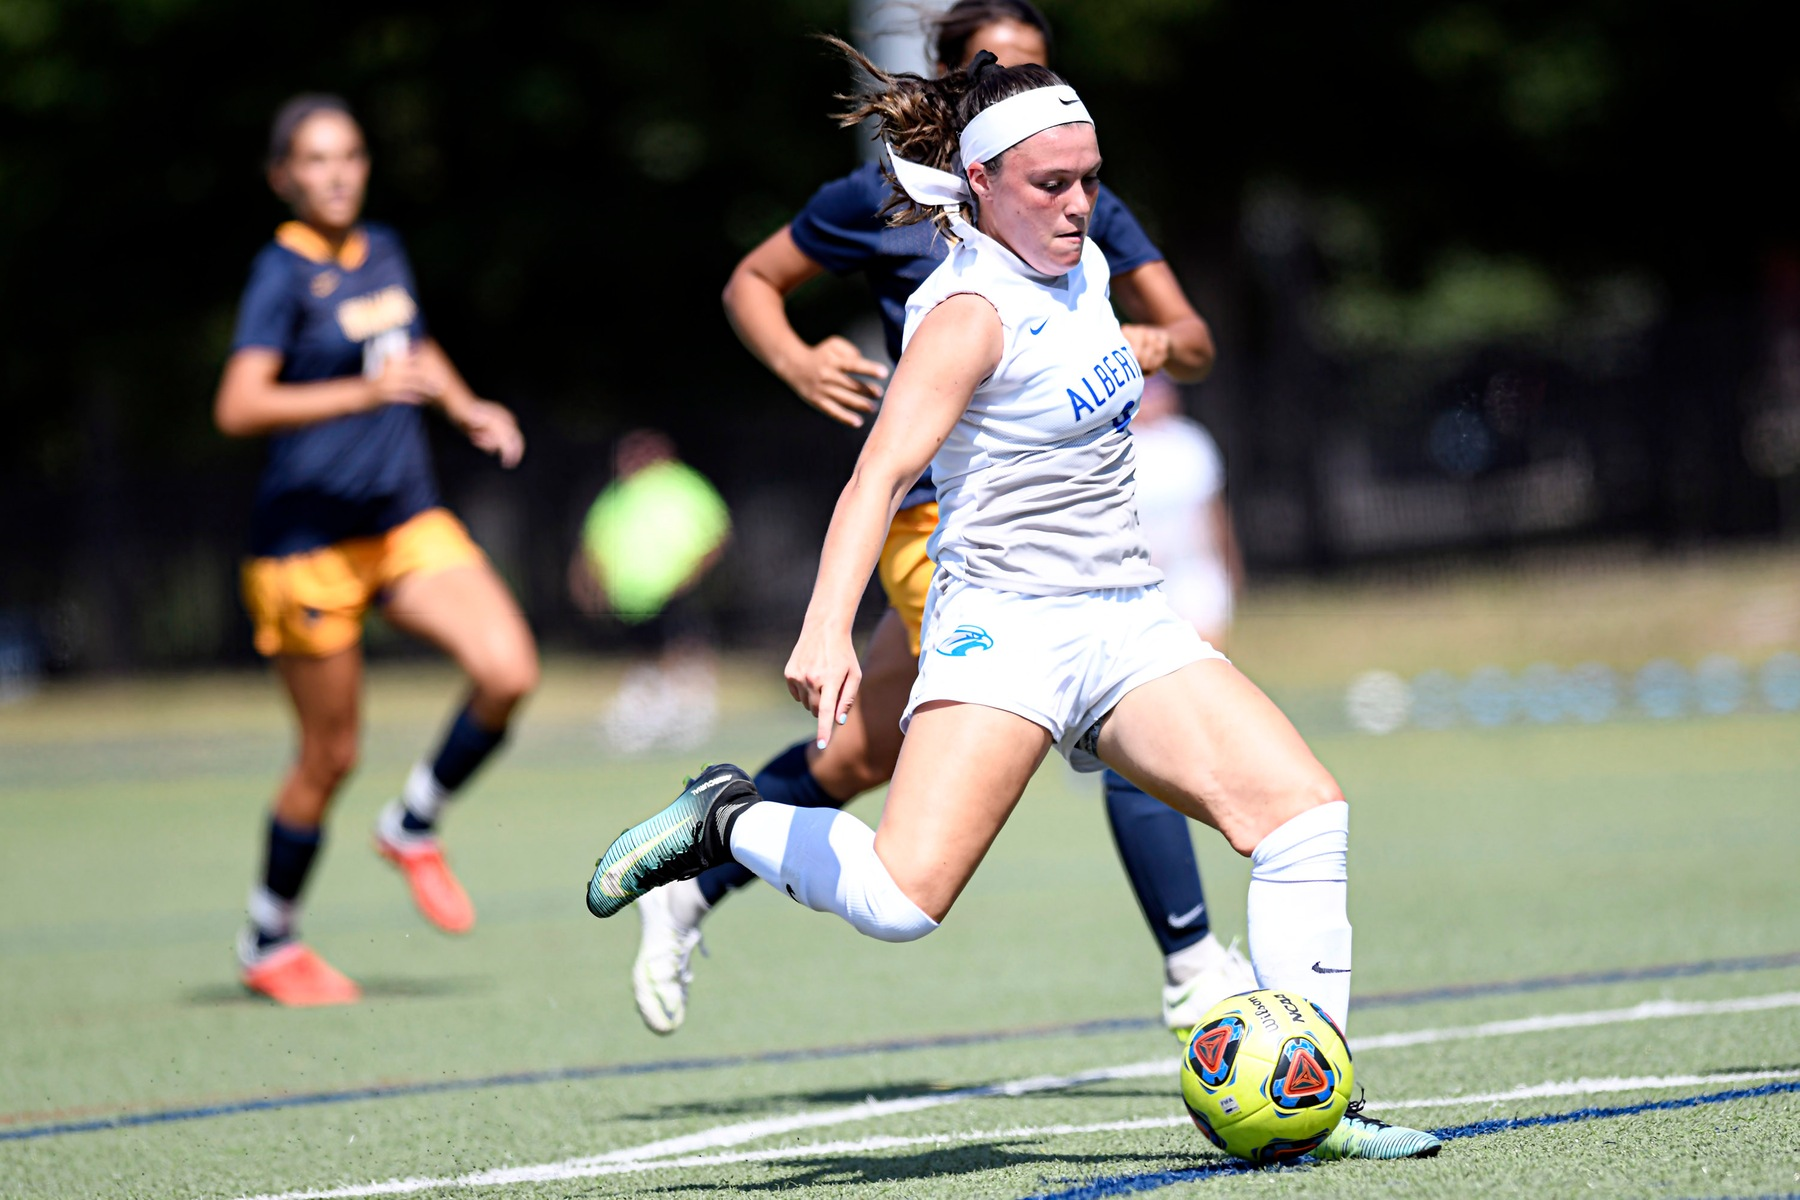 Women's Soccer Falls at Home to Norwich, 3-1